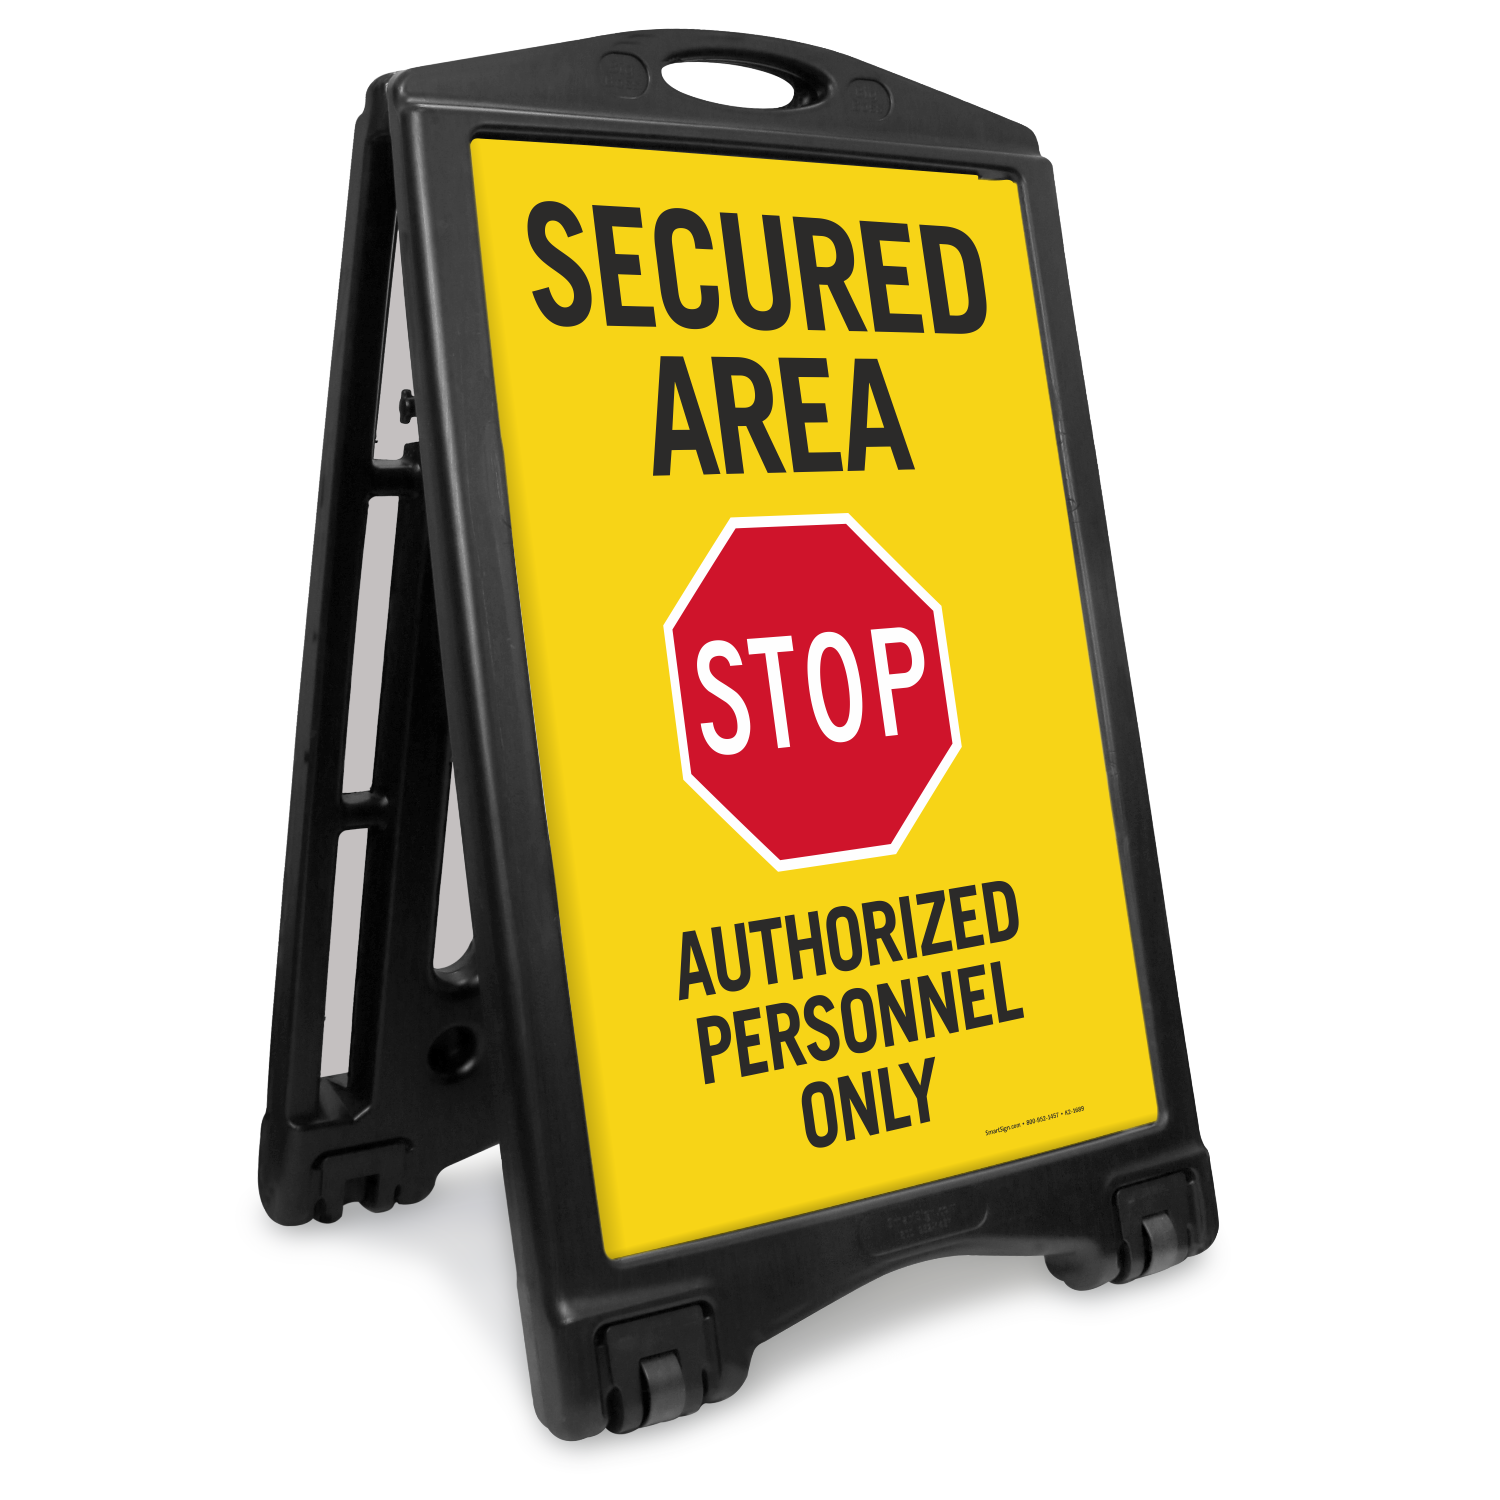 Secured Area Stop Authorized Personnel Sidewalk Sign